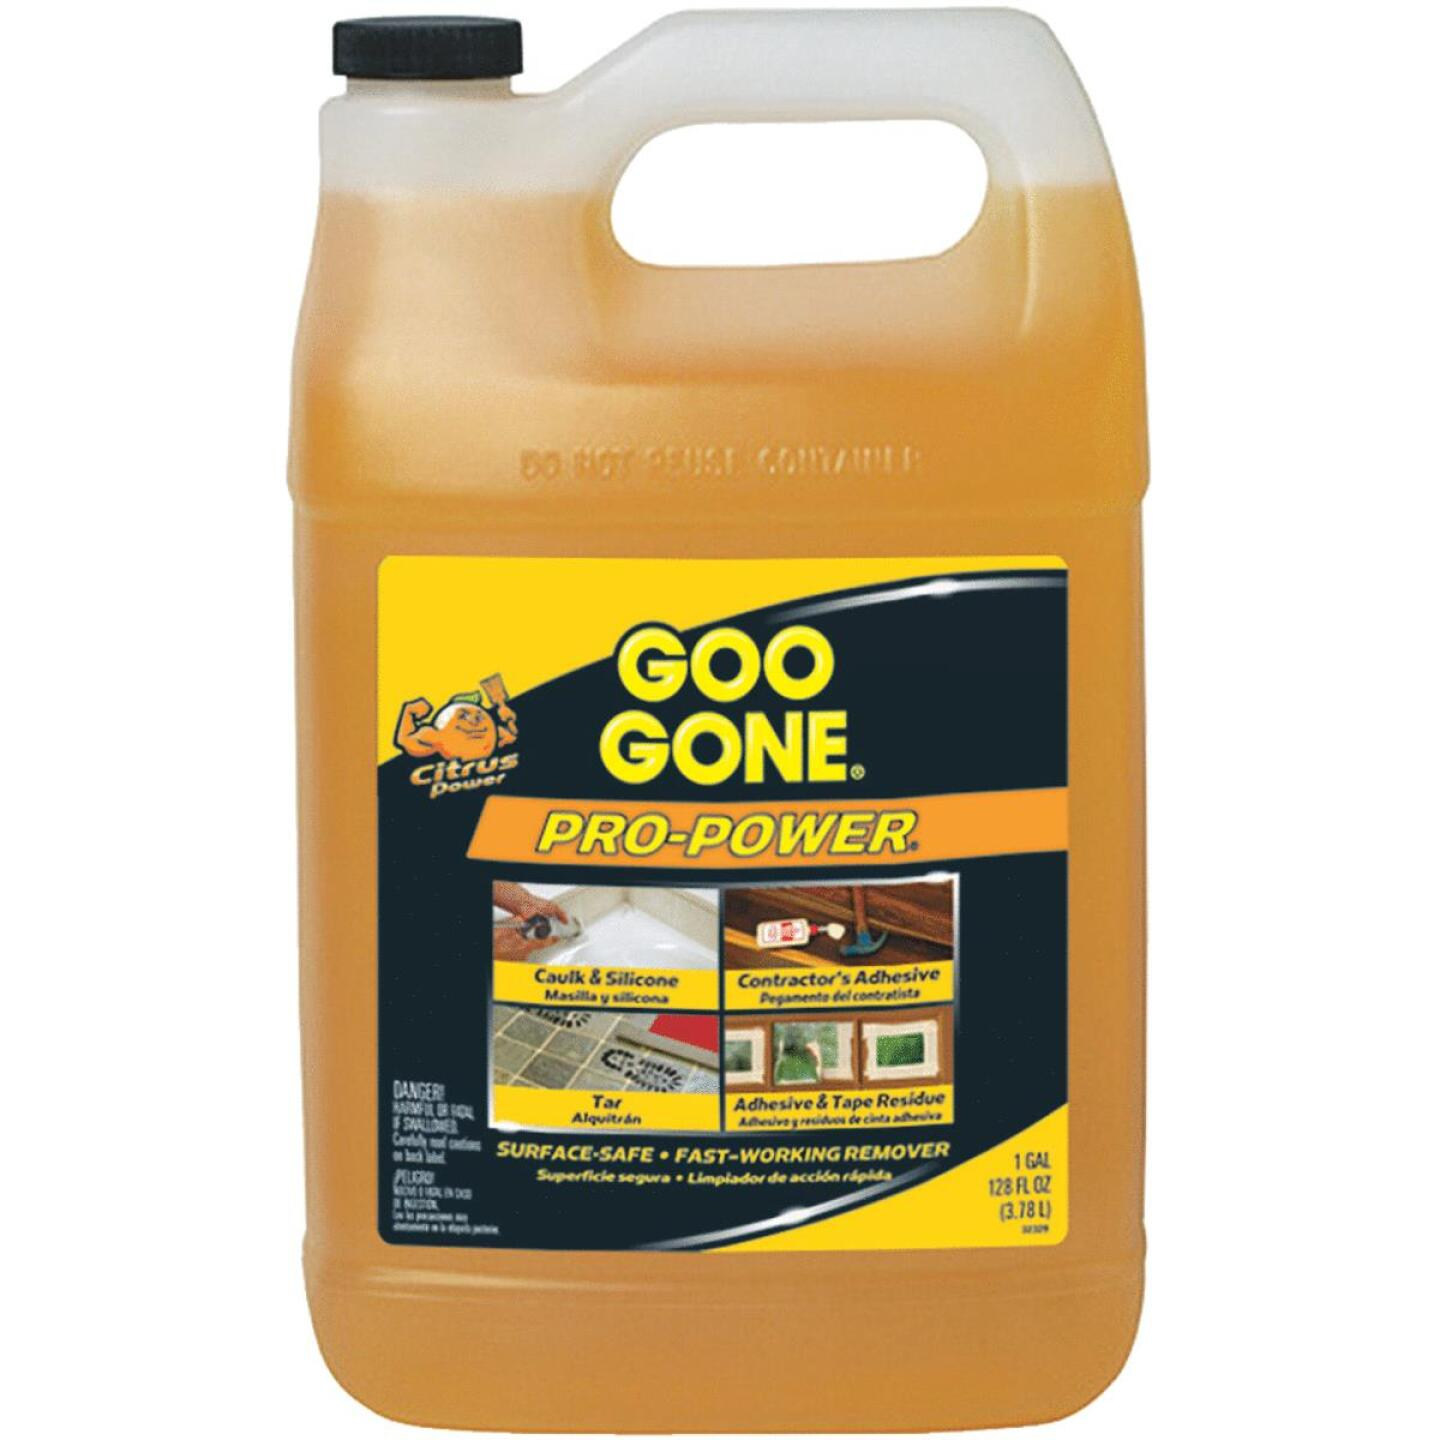 Goo Gone 1 Gal. Pro-Power Adhesive Remover Image 304